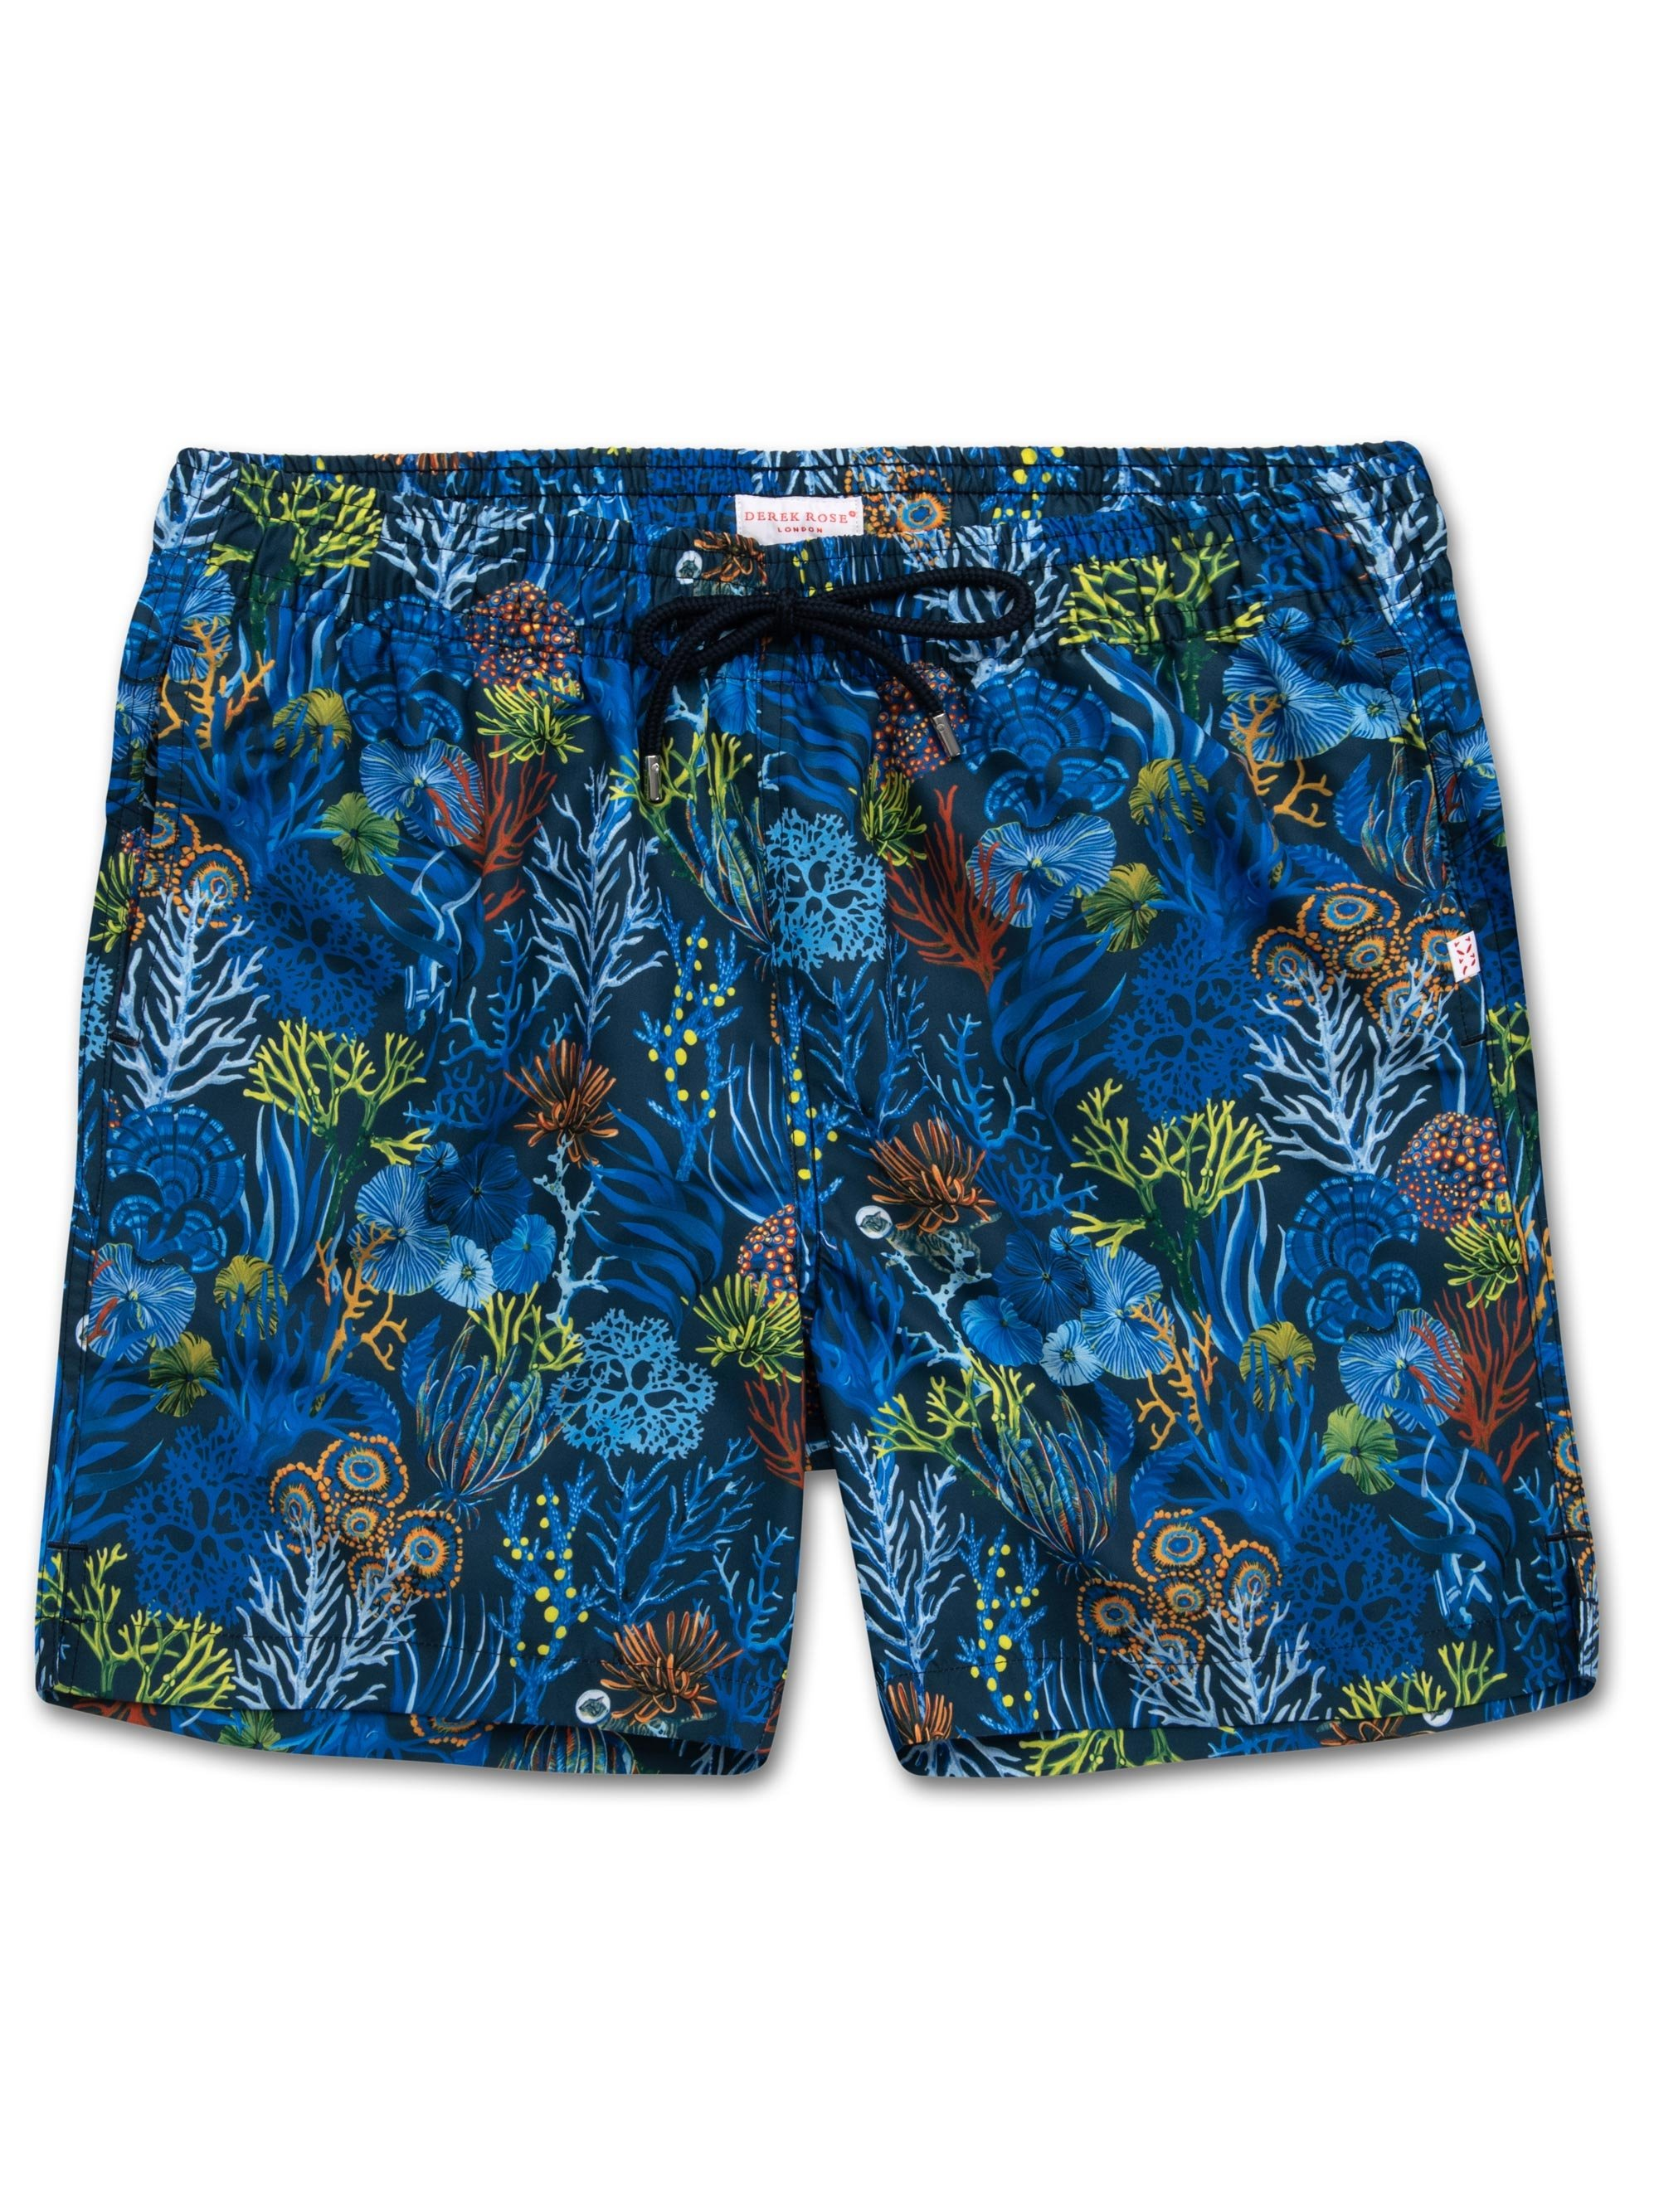 Men's Classic Fit Swim Shorts Maui 20 Multi